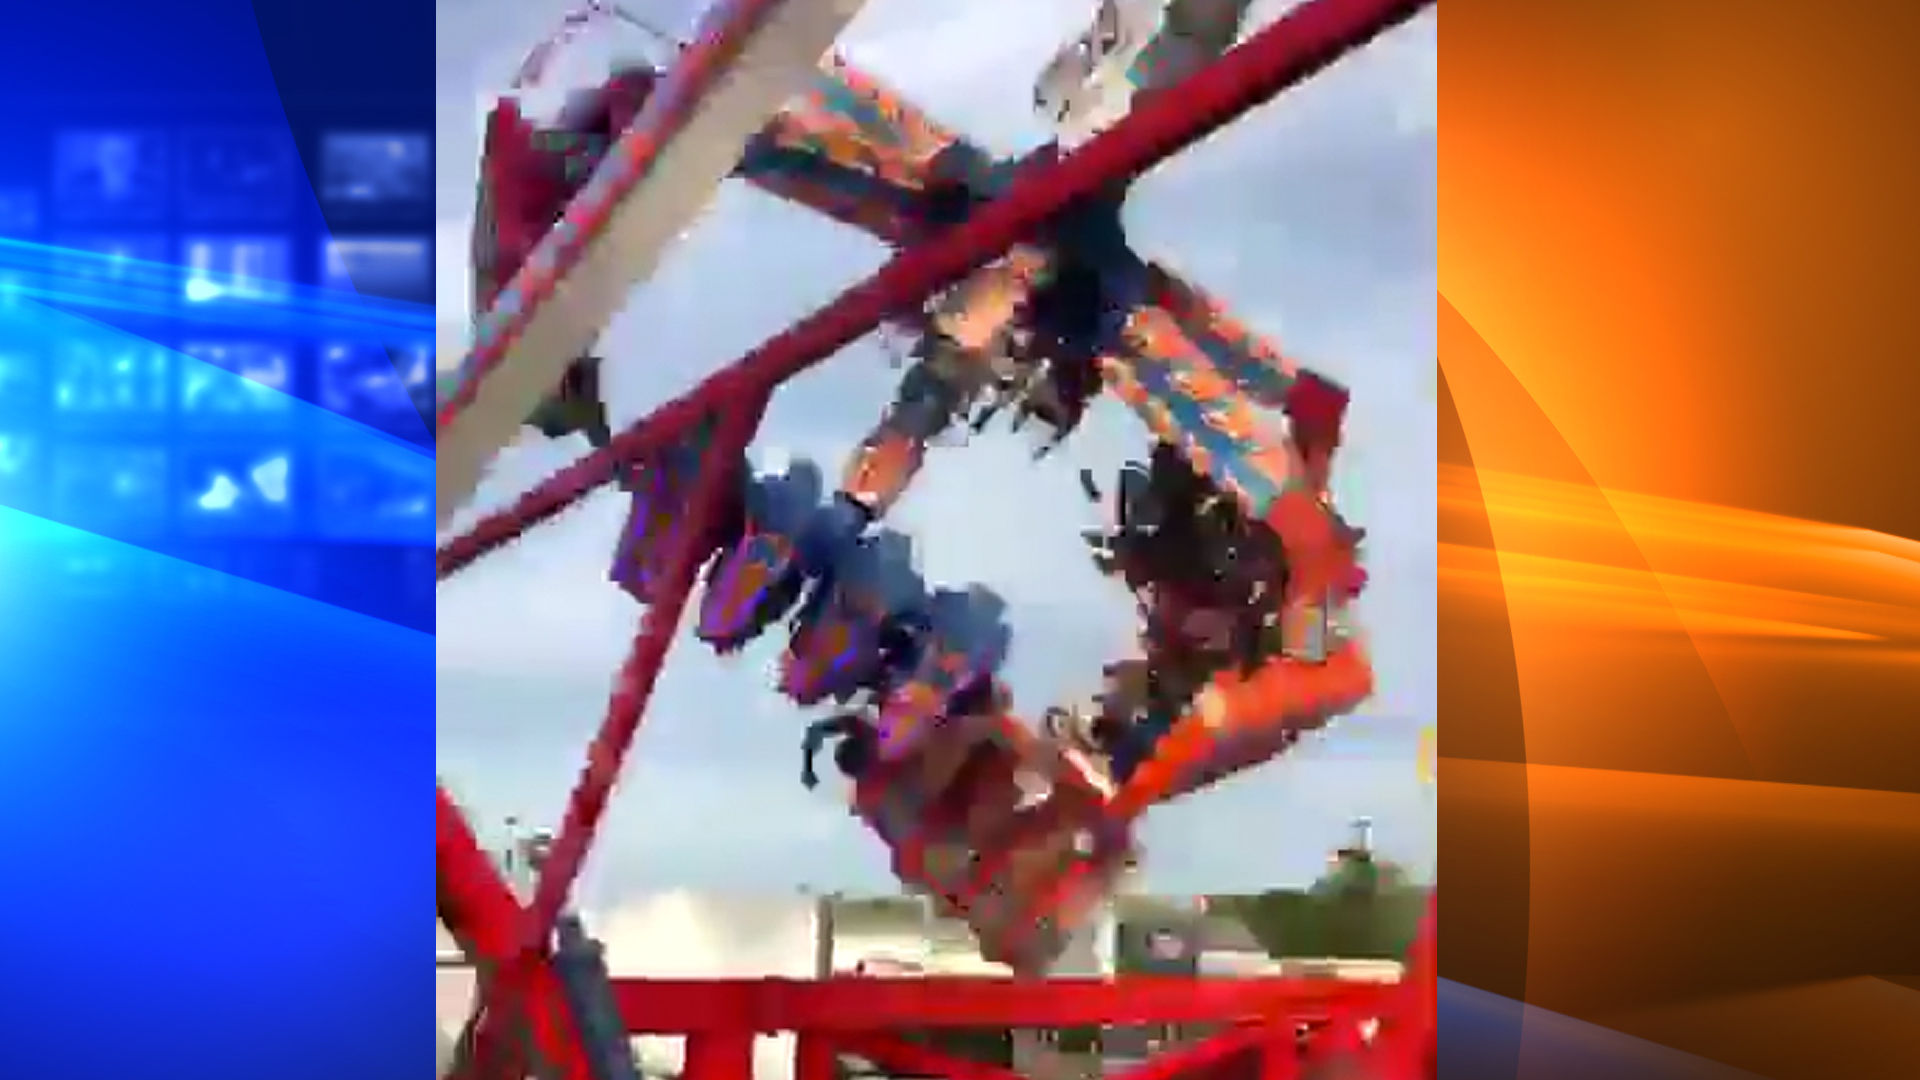 """The """"Fire Ball"""" ride that malfunctioned and left one person dead and others injured on July 25, 2017, is seen in this image. (Credit: KTLA)"""